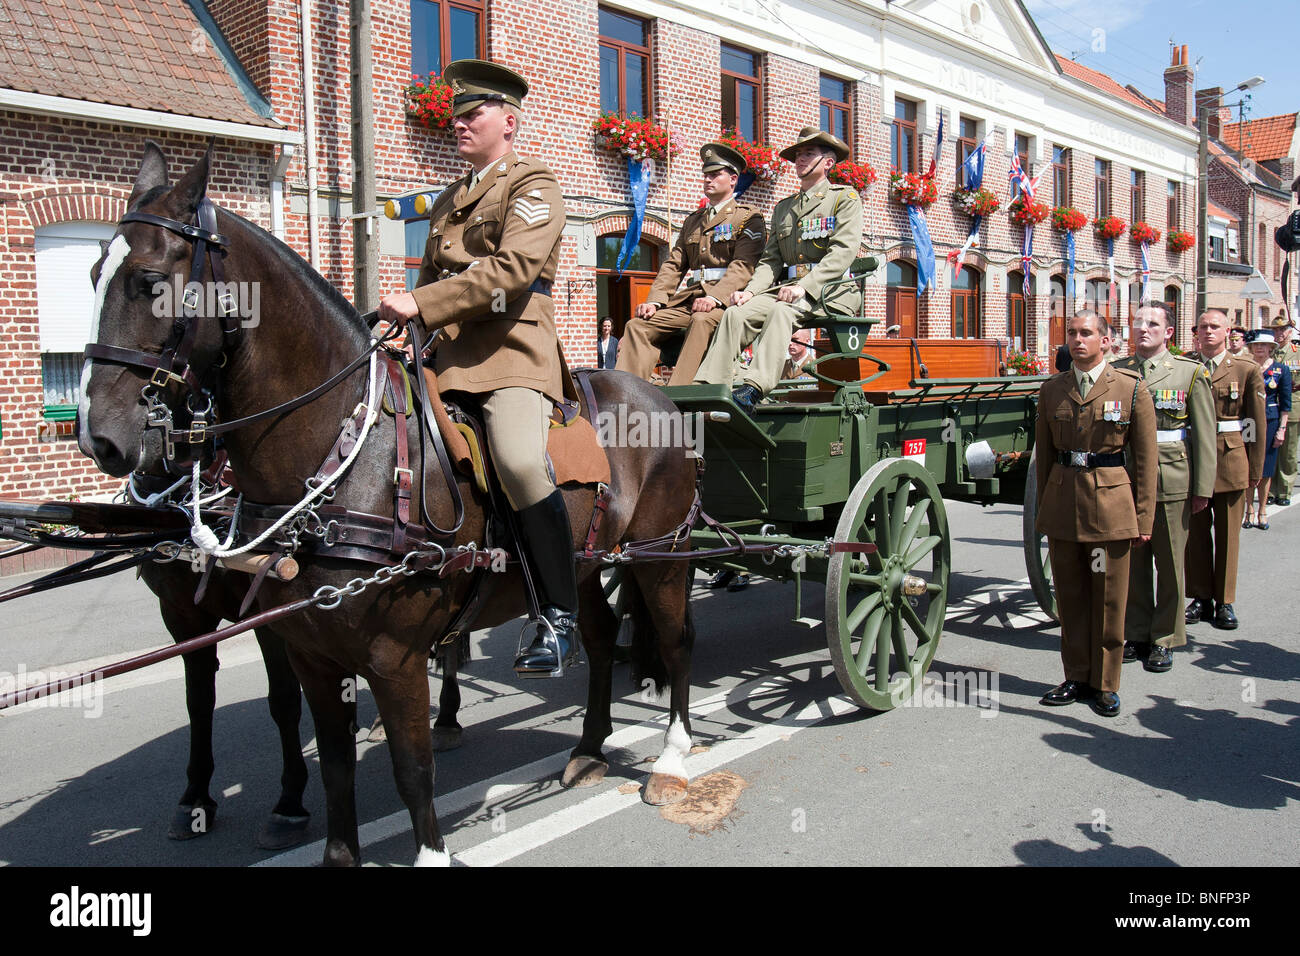 A horse drawn carriage carries the last WW1 soldier to be buried at the new British War Graves Commission cemetery - Stock Image